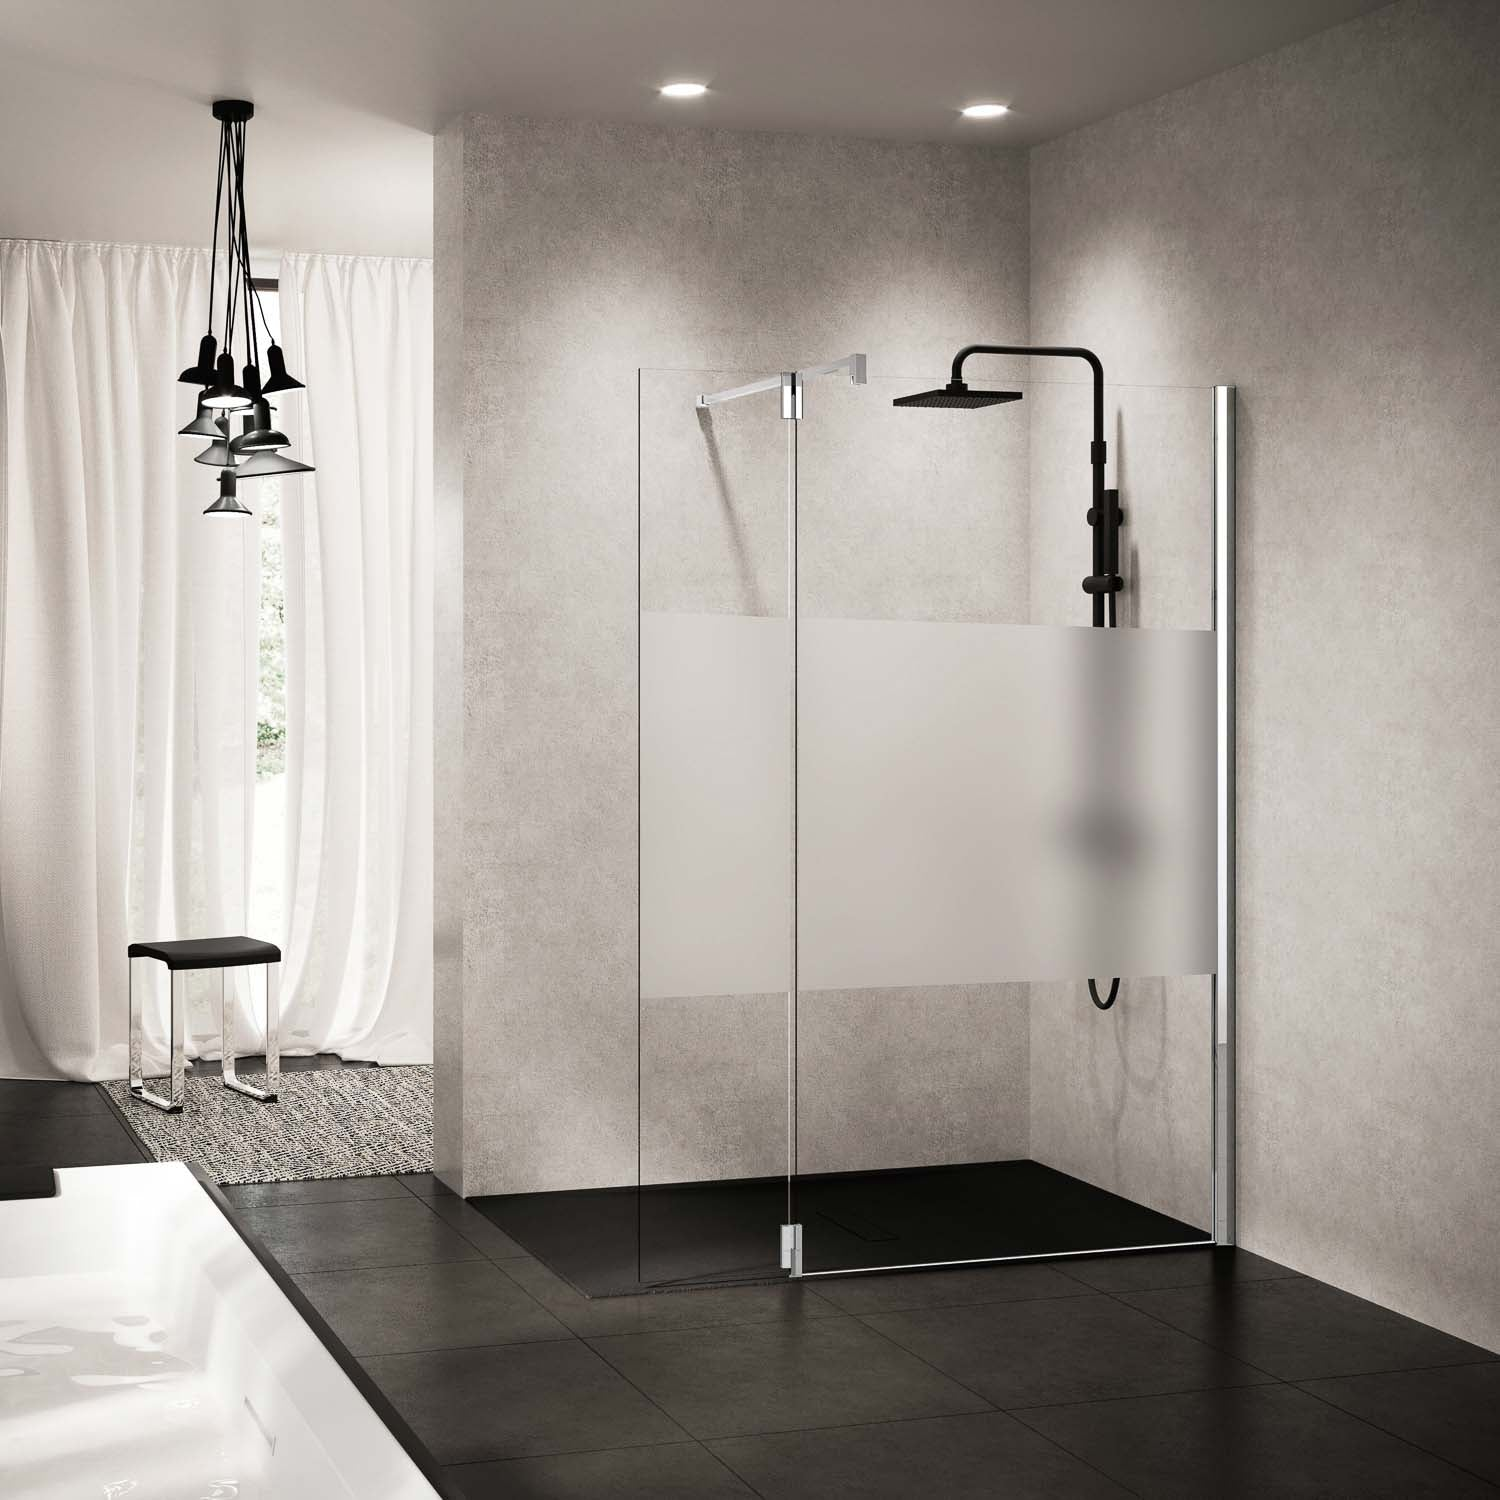 Right side 370mm Ergo Wet Room Deflector Panel Satin Band Glass with a chrome finish lifestyle image